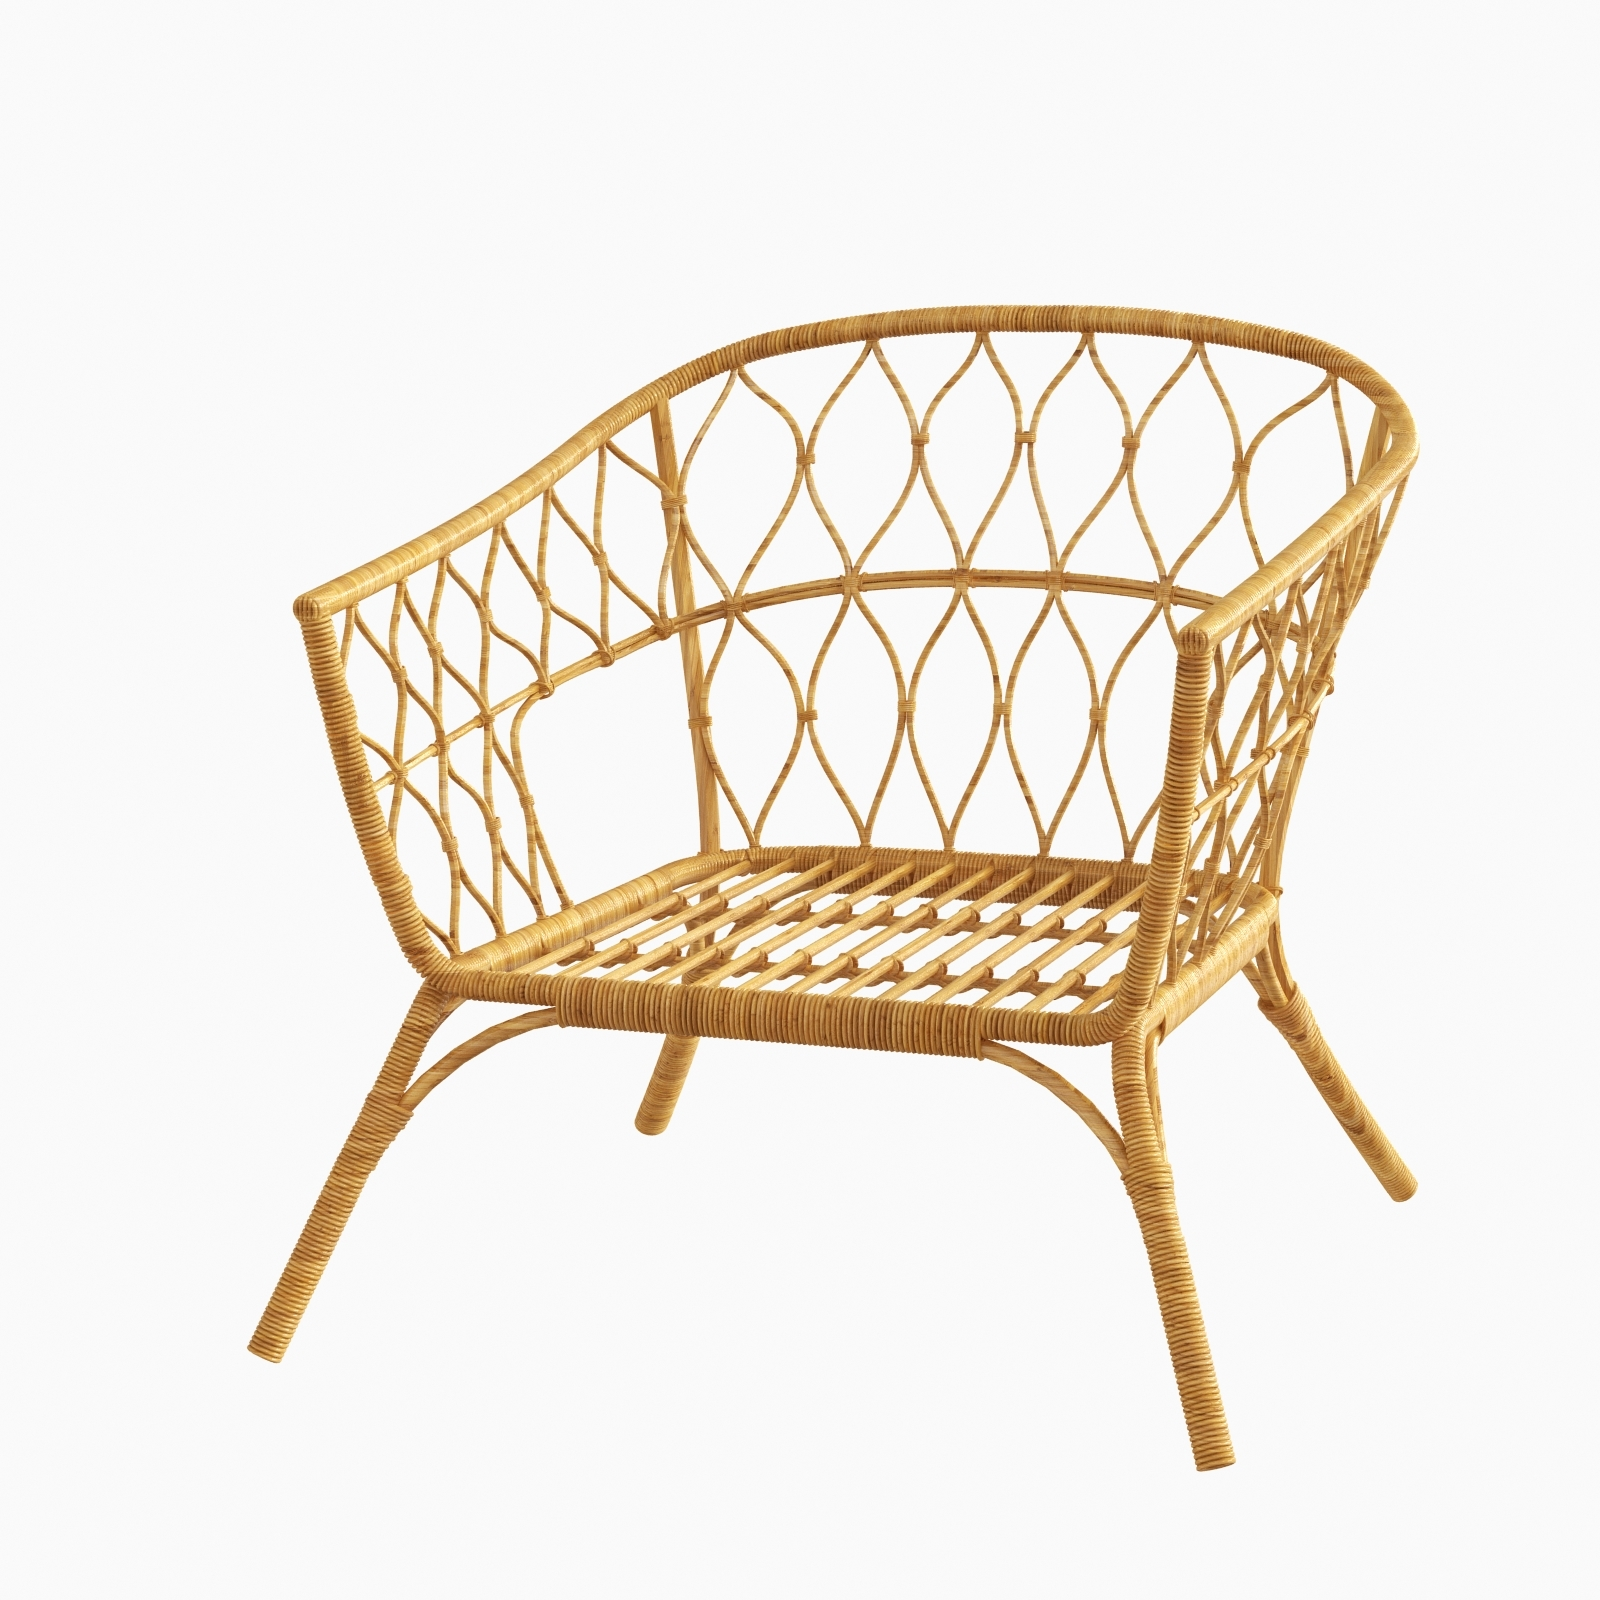 Tremendous Stockholm 2017 Ikea Rattan Chair Gmtry Best Dining Table And Chair Ideas Images Gmtryco